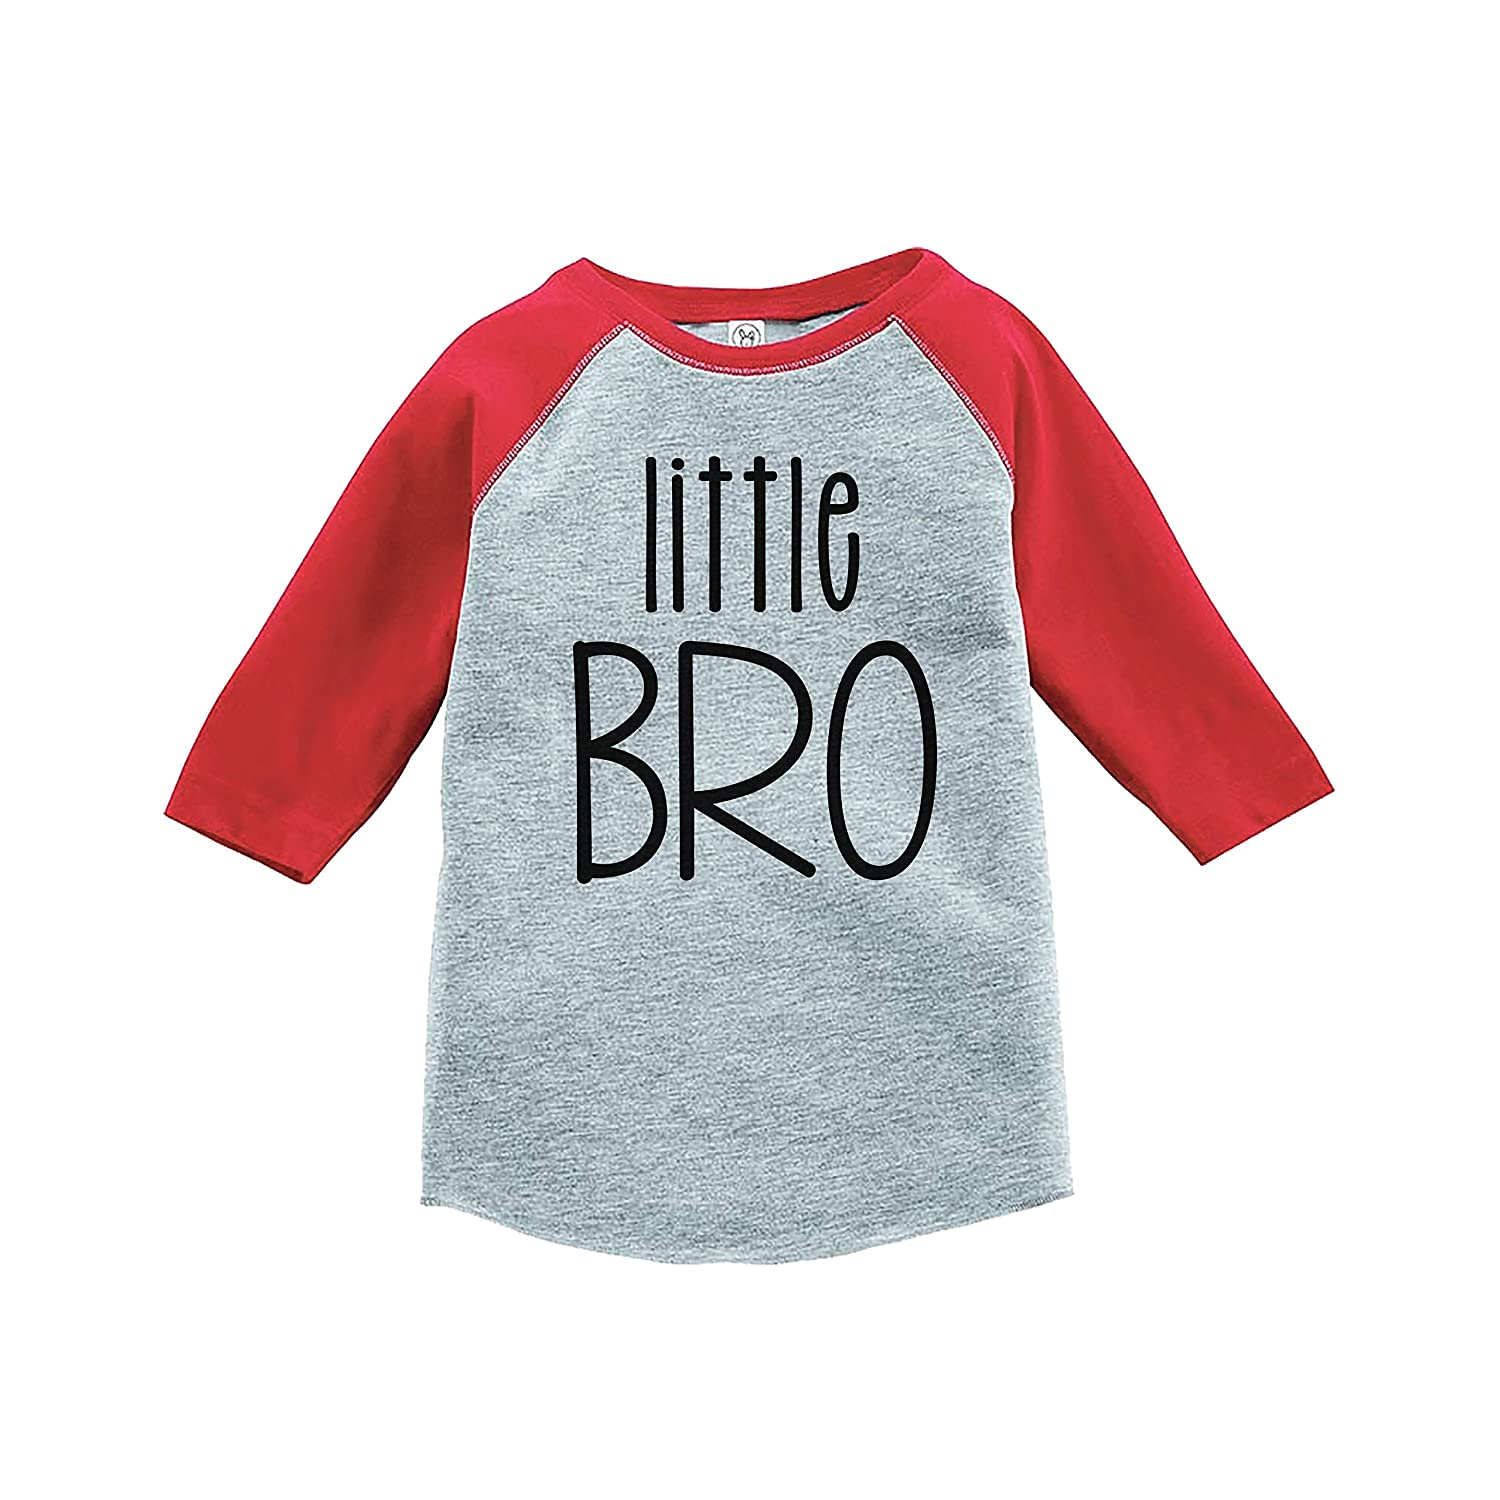 7 ate 9 Apparel Boys Little Brother Red Baseball Tee